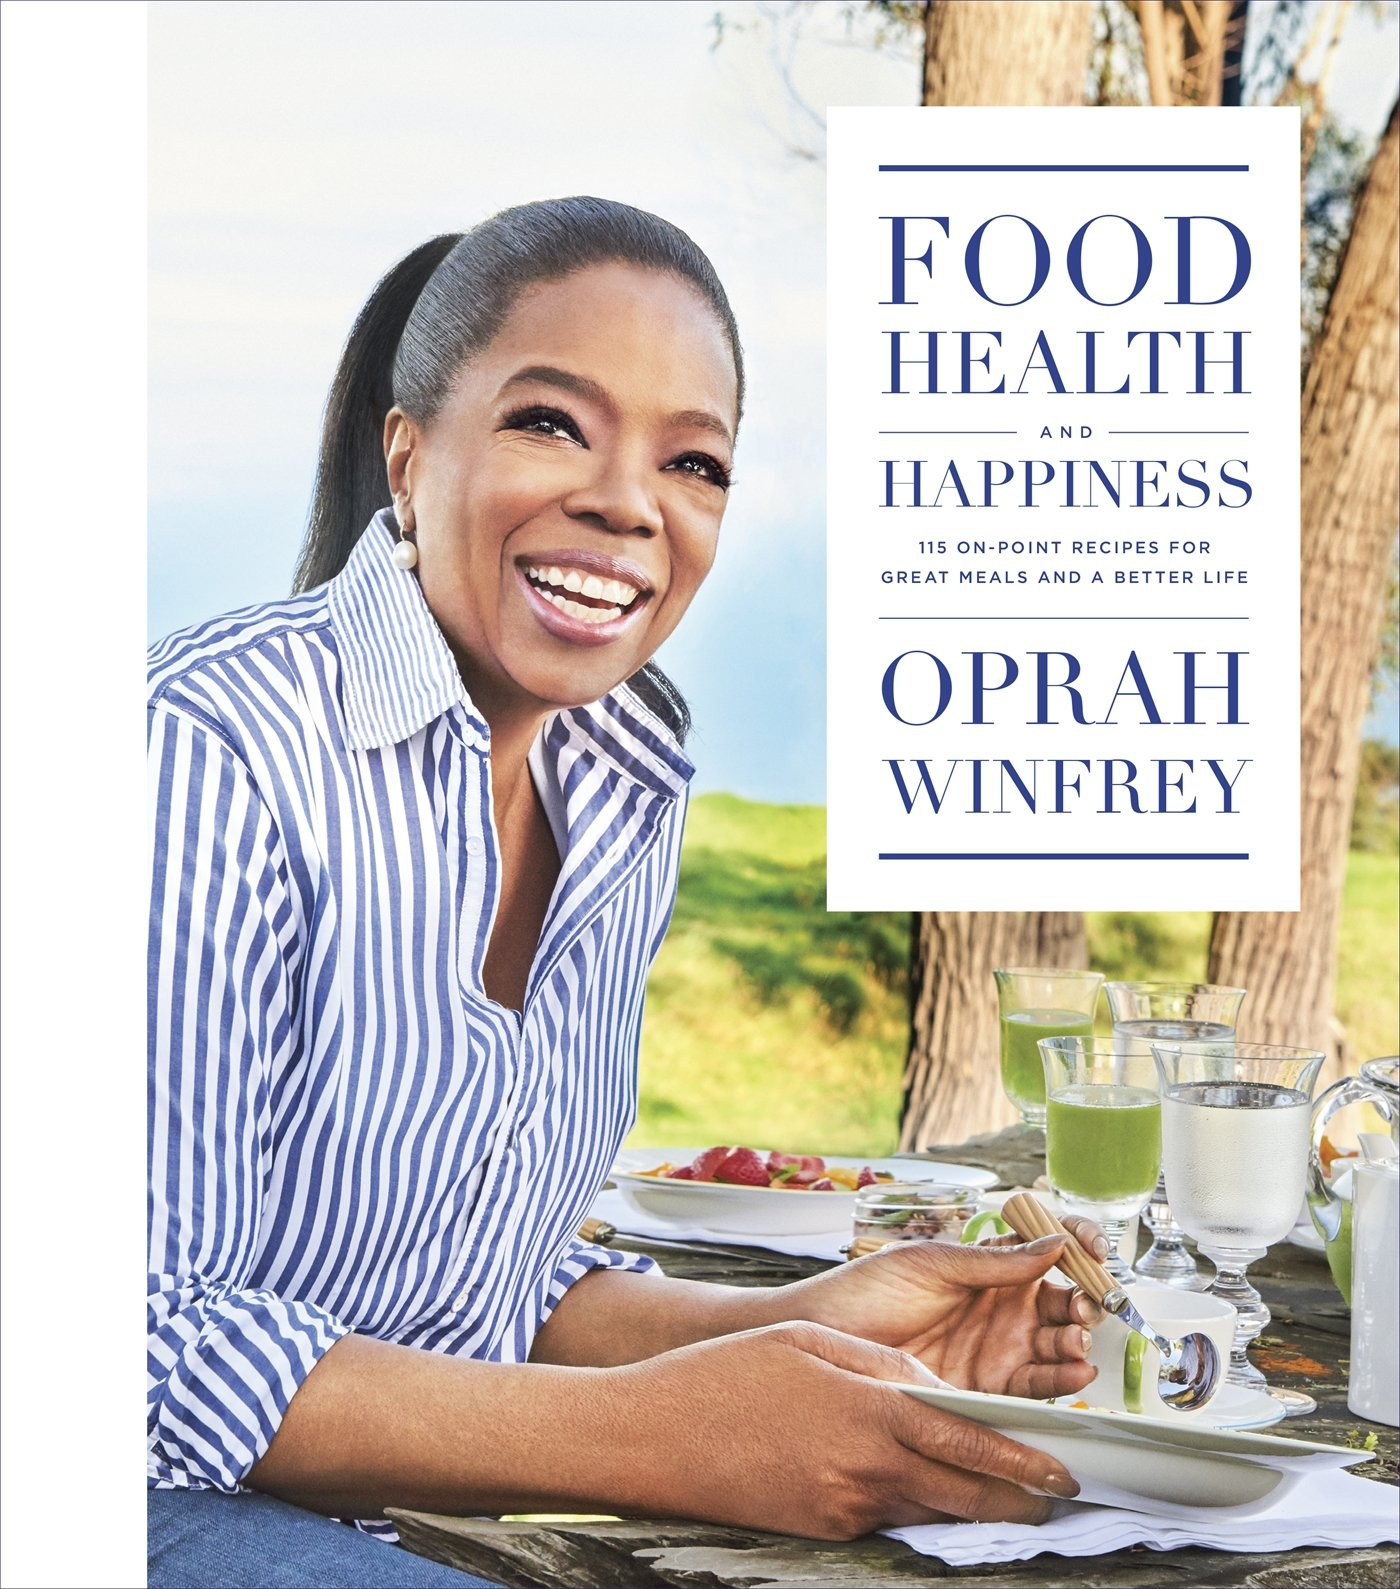 Essay My Vacation Food Health And Happiness  On Point Recipes For Great Meals Food Health  And Happiness  Oprah Winfrey Signs Off After  Essay About To Kill A Mockingbird also Format For Writing An Argumentative Essay Essay On Oprah Winfrey Food Health And Happiness  On Point  The Pen Is Mightier Than The Sword Essay